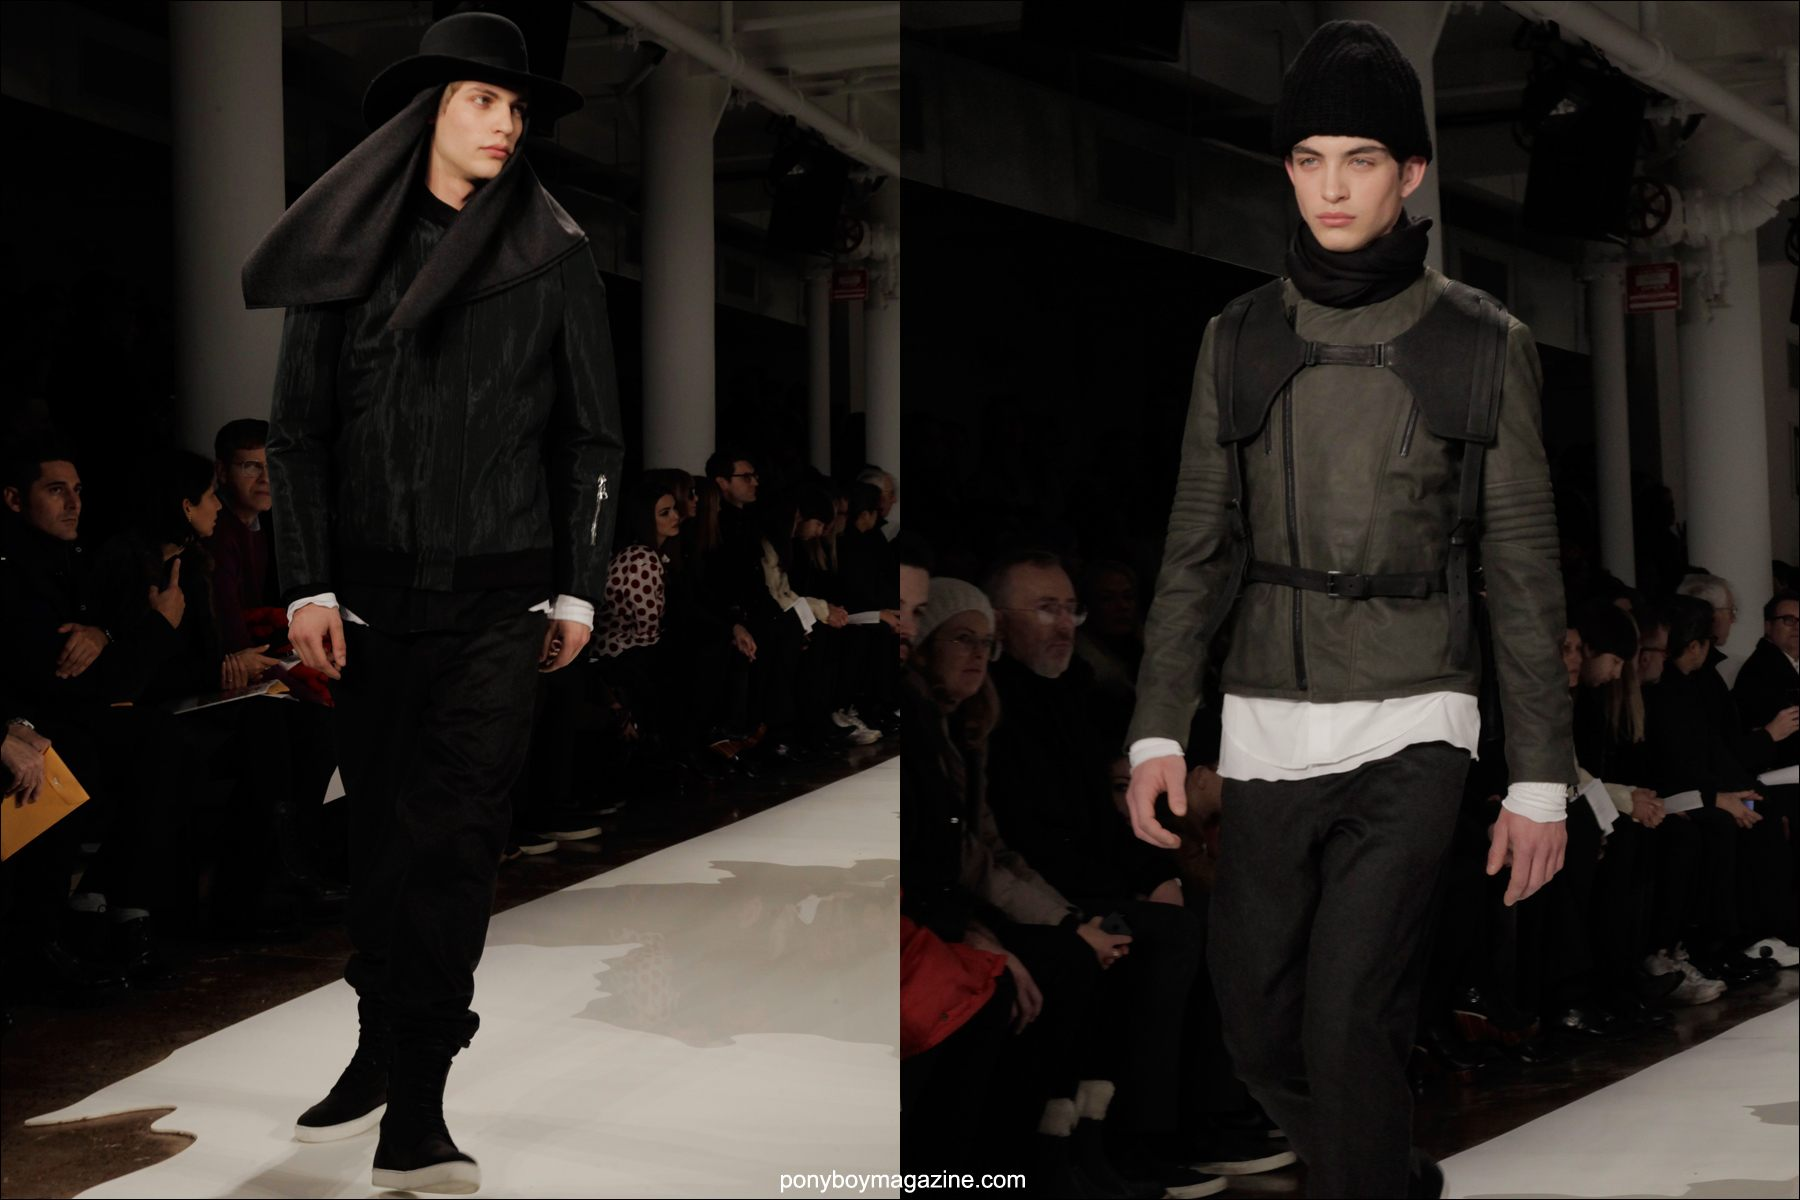 Edgy menswear fashion at the runway debut of Public School A/W 2014 at Milk Studios in downtown Manhattan, photographed by Alexander Thompson for Ponyboy Magazine.